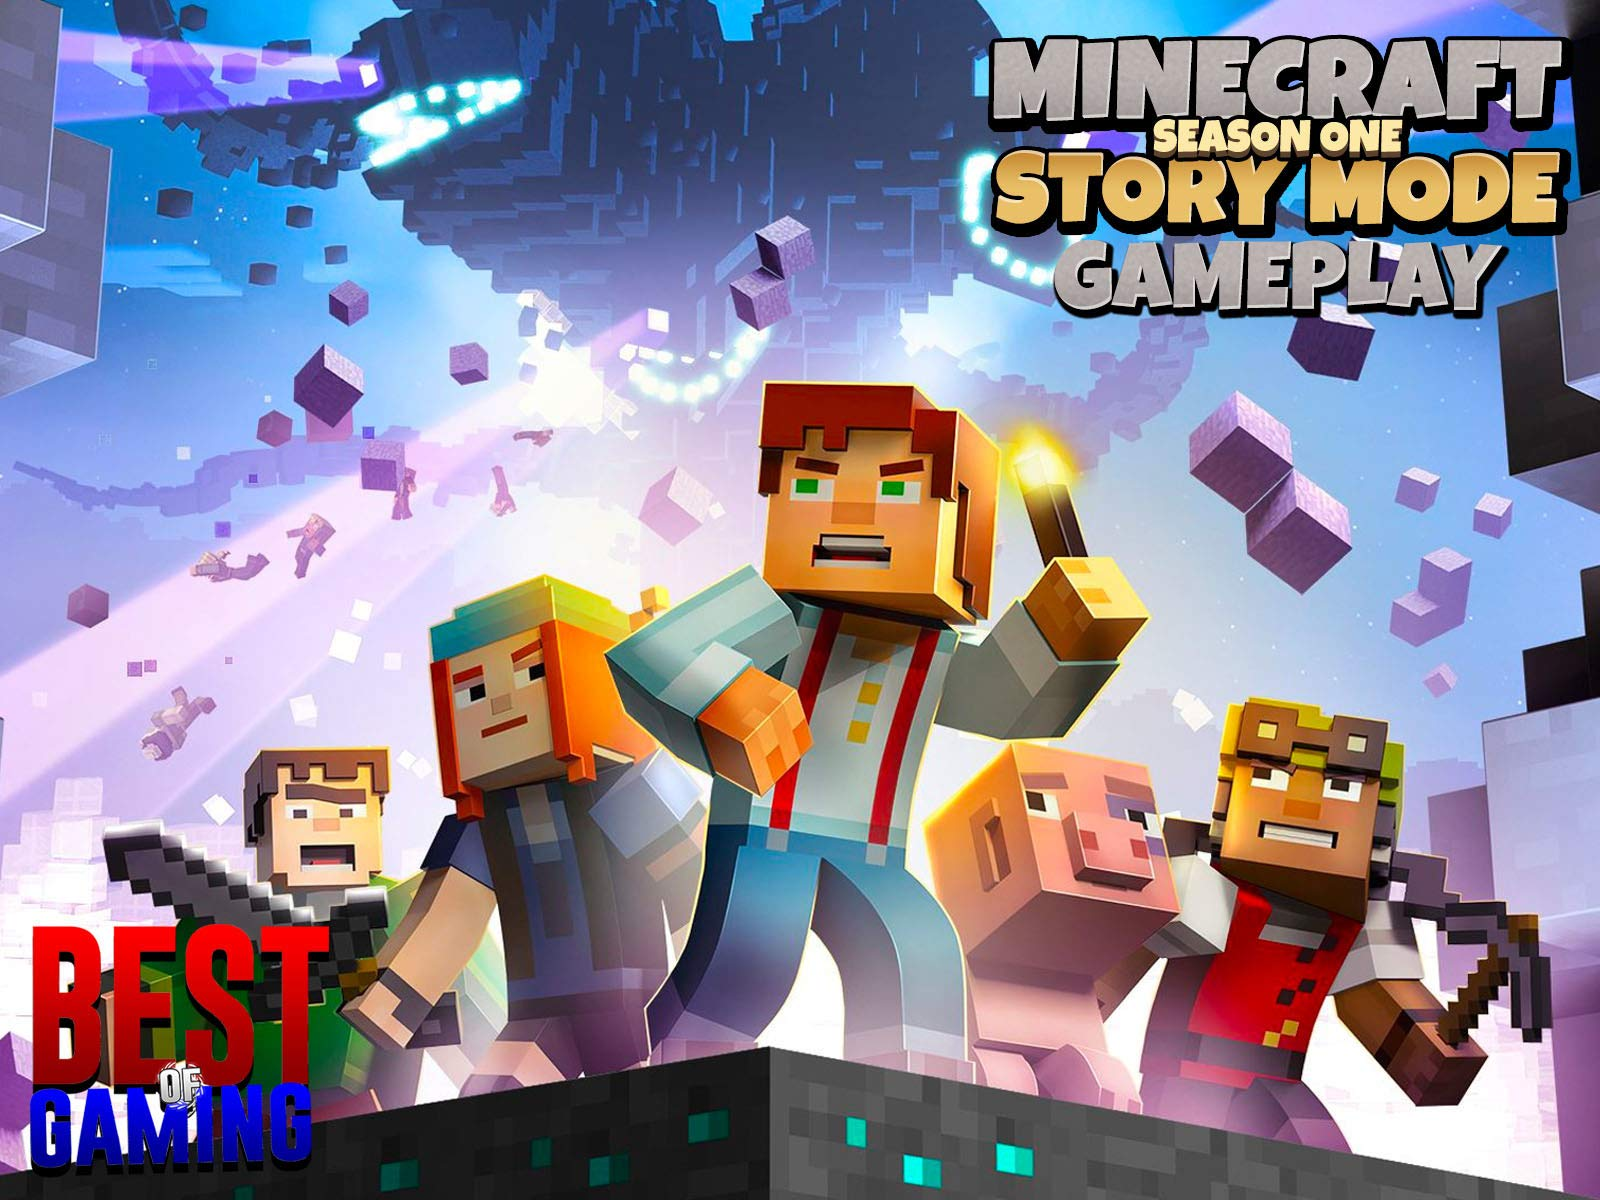 Clip: Story Mode Minecraft Season One Gameplay - Best of Gaming! on Amazon Prime Video UK